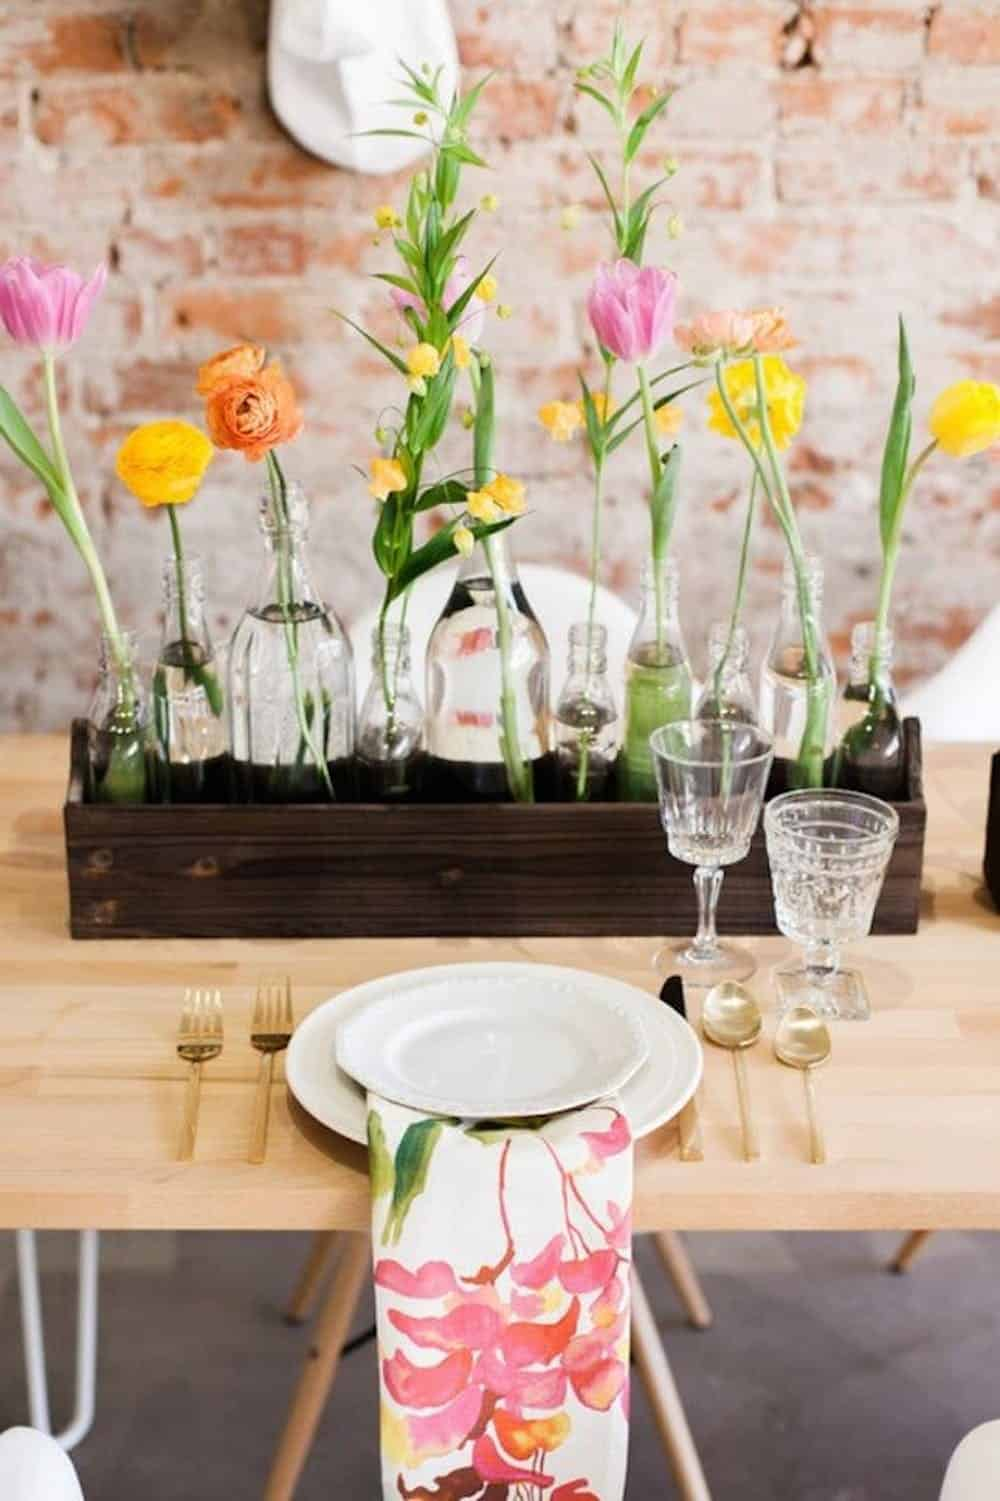 Glass bottles wood planter diy centerpiece